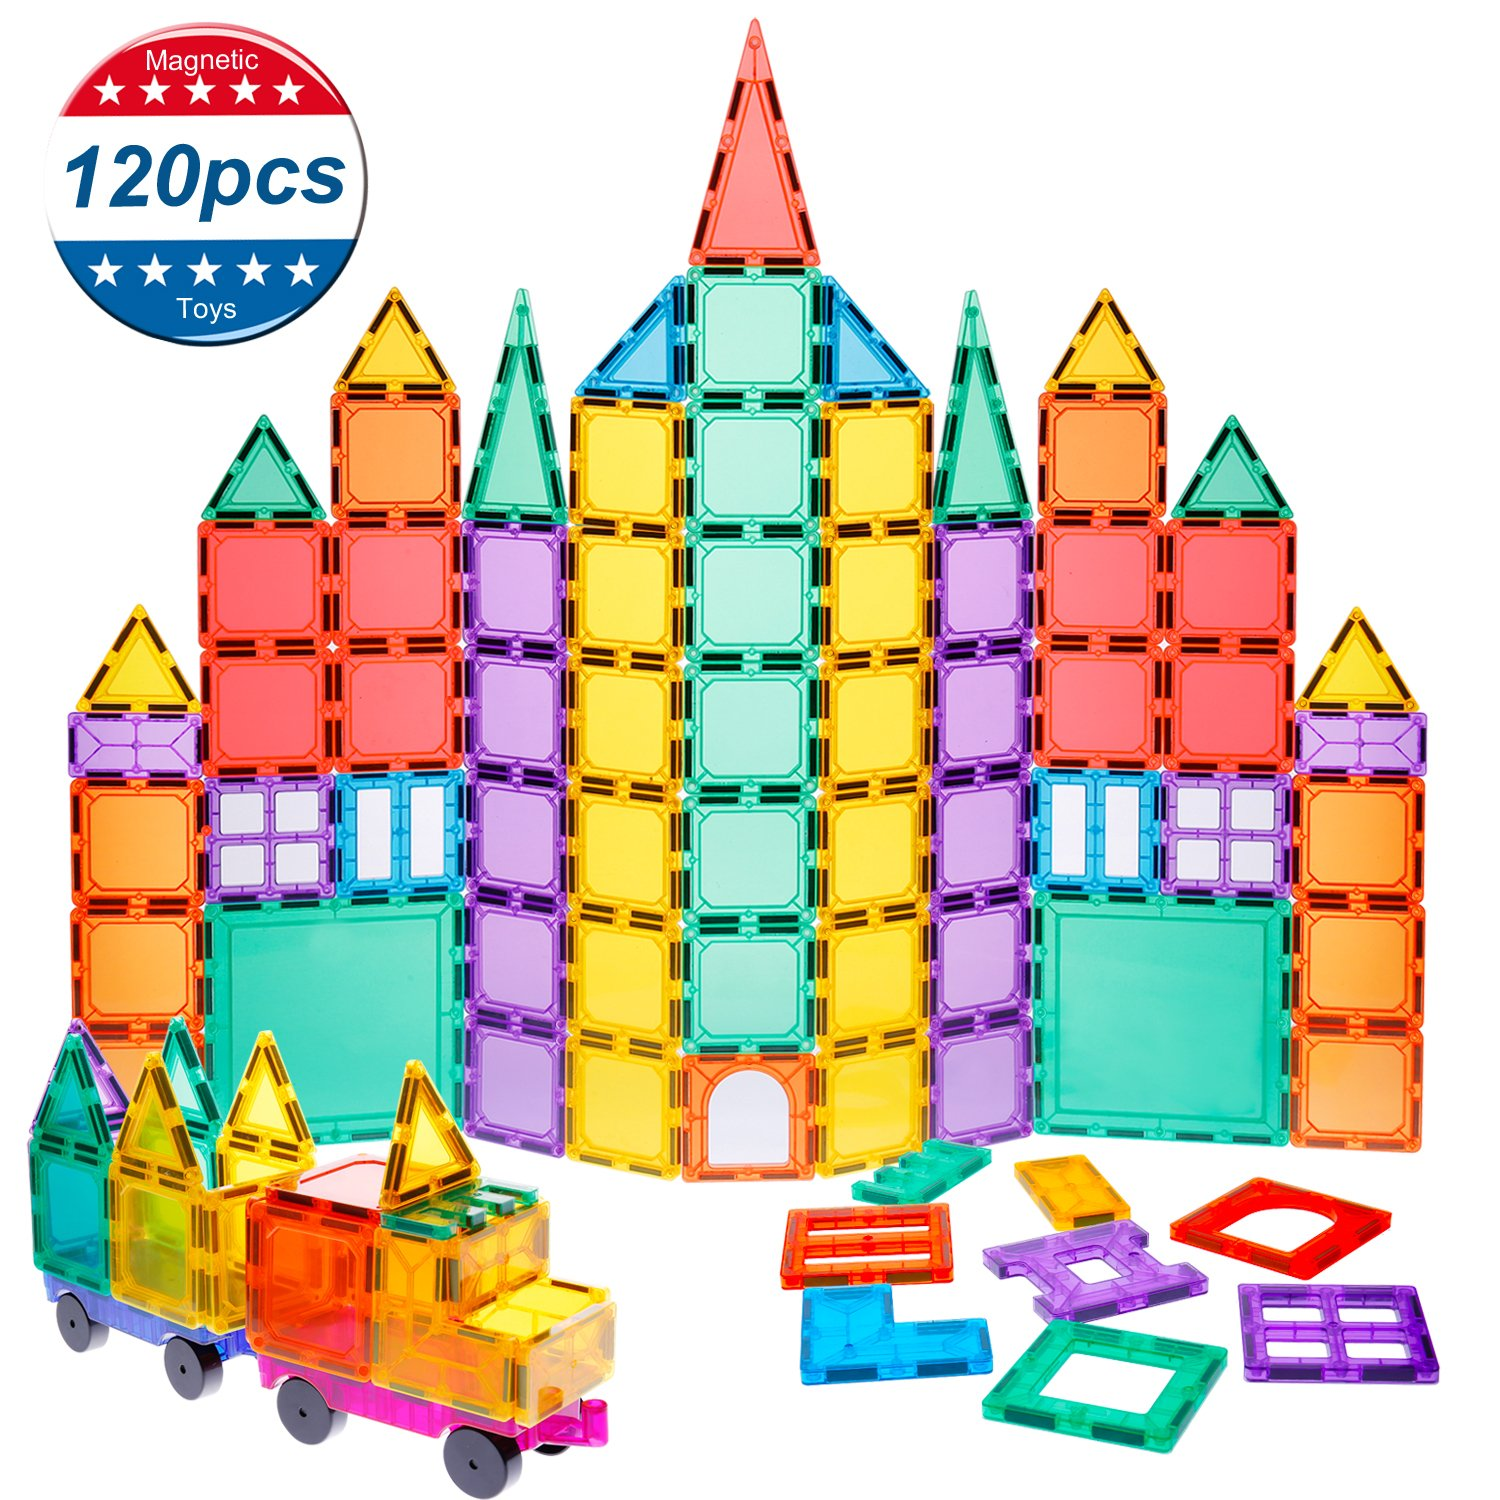 Magnet Building Tiles Kids Magnet Toys ,120 Pcs Magnet Blocks 3D Magnetic Building Tiles Set with 2 Wheels, Educational Toys for Kids Children Review